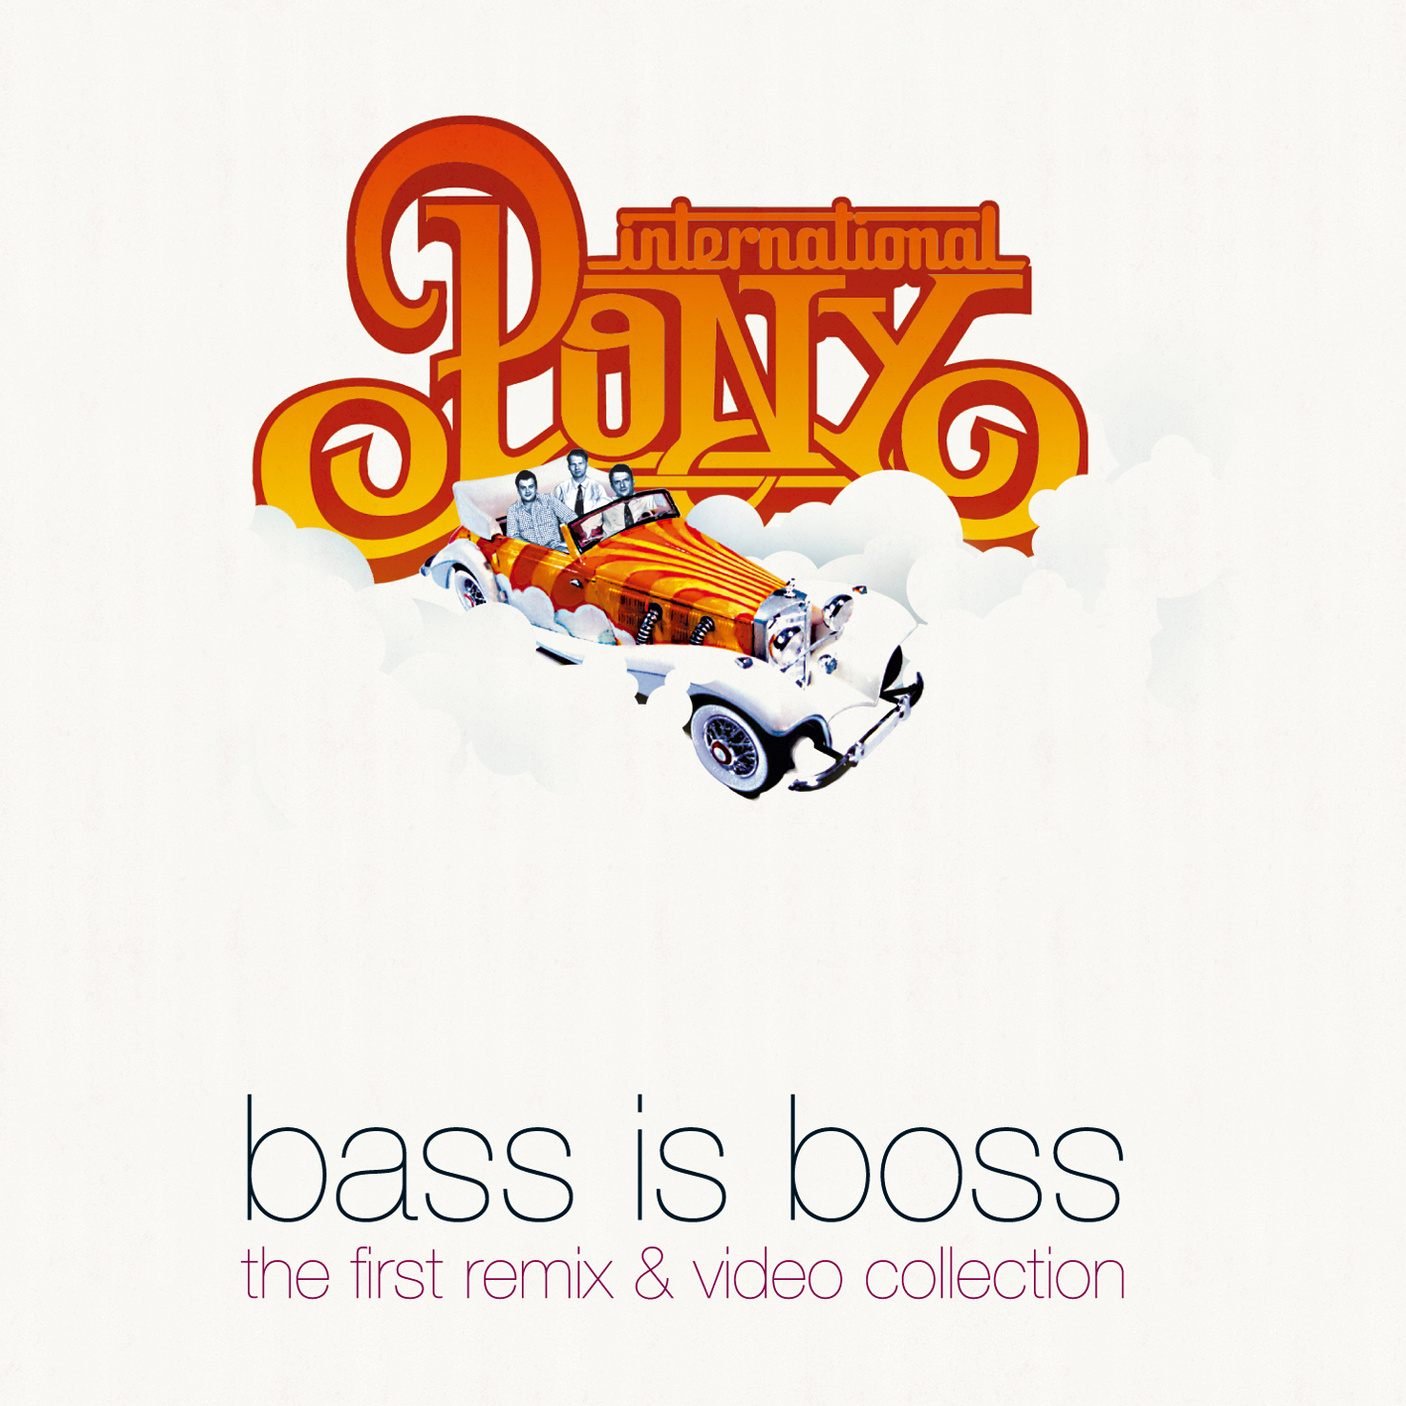 International Pony - Bass is Boss [DVD-Single, ...